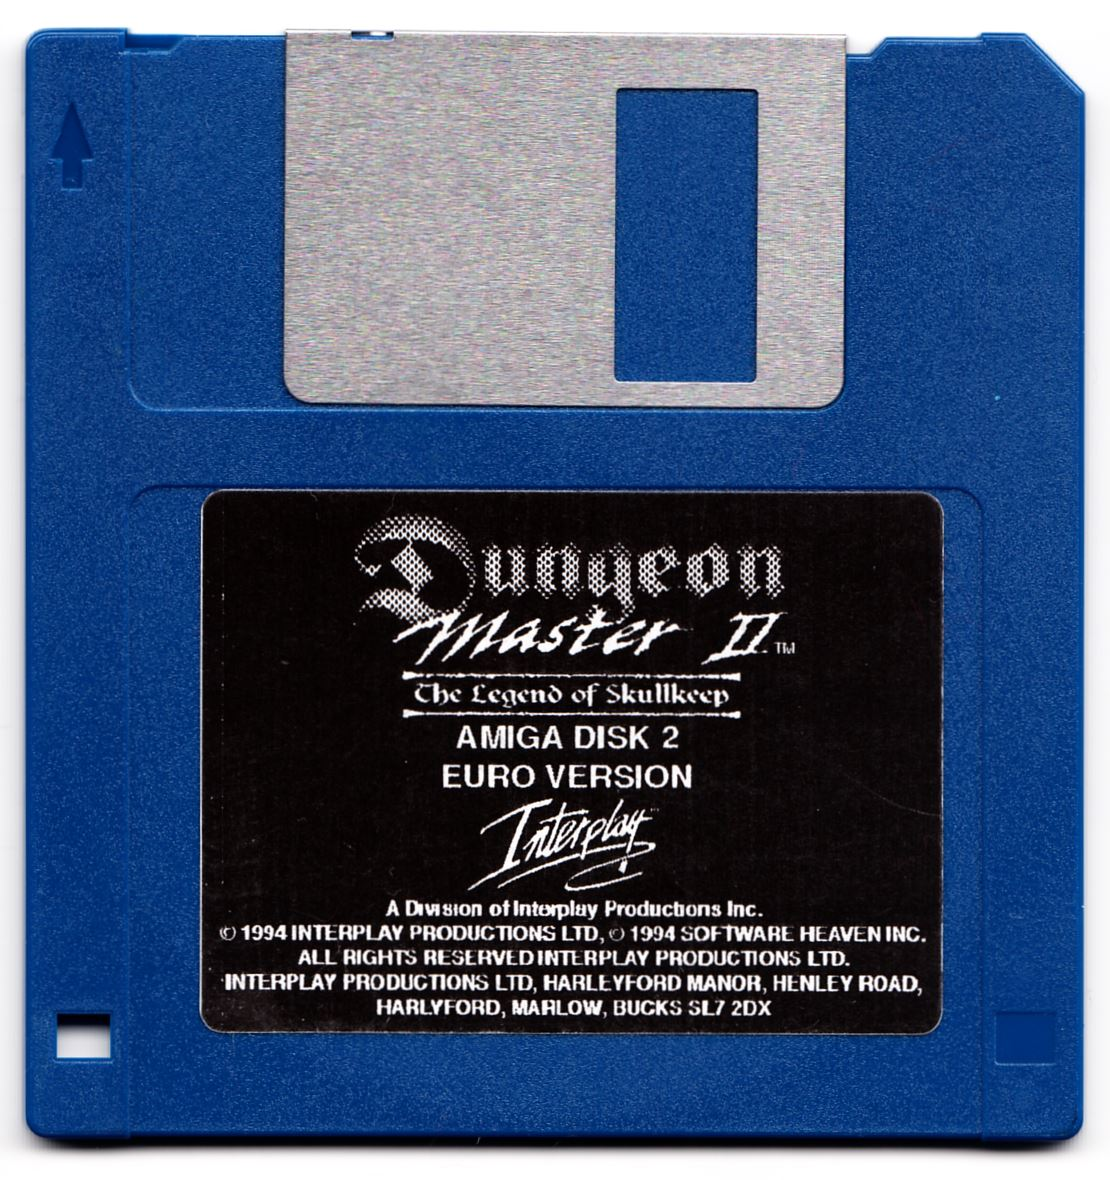 Game - Dungeon Master II - UK - Amiga Alternate - Disk 2 - Front - Scan